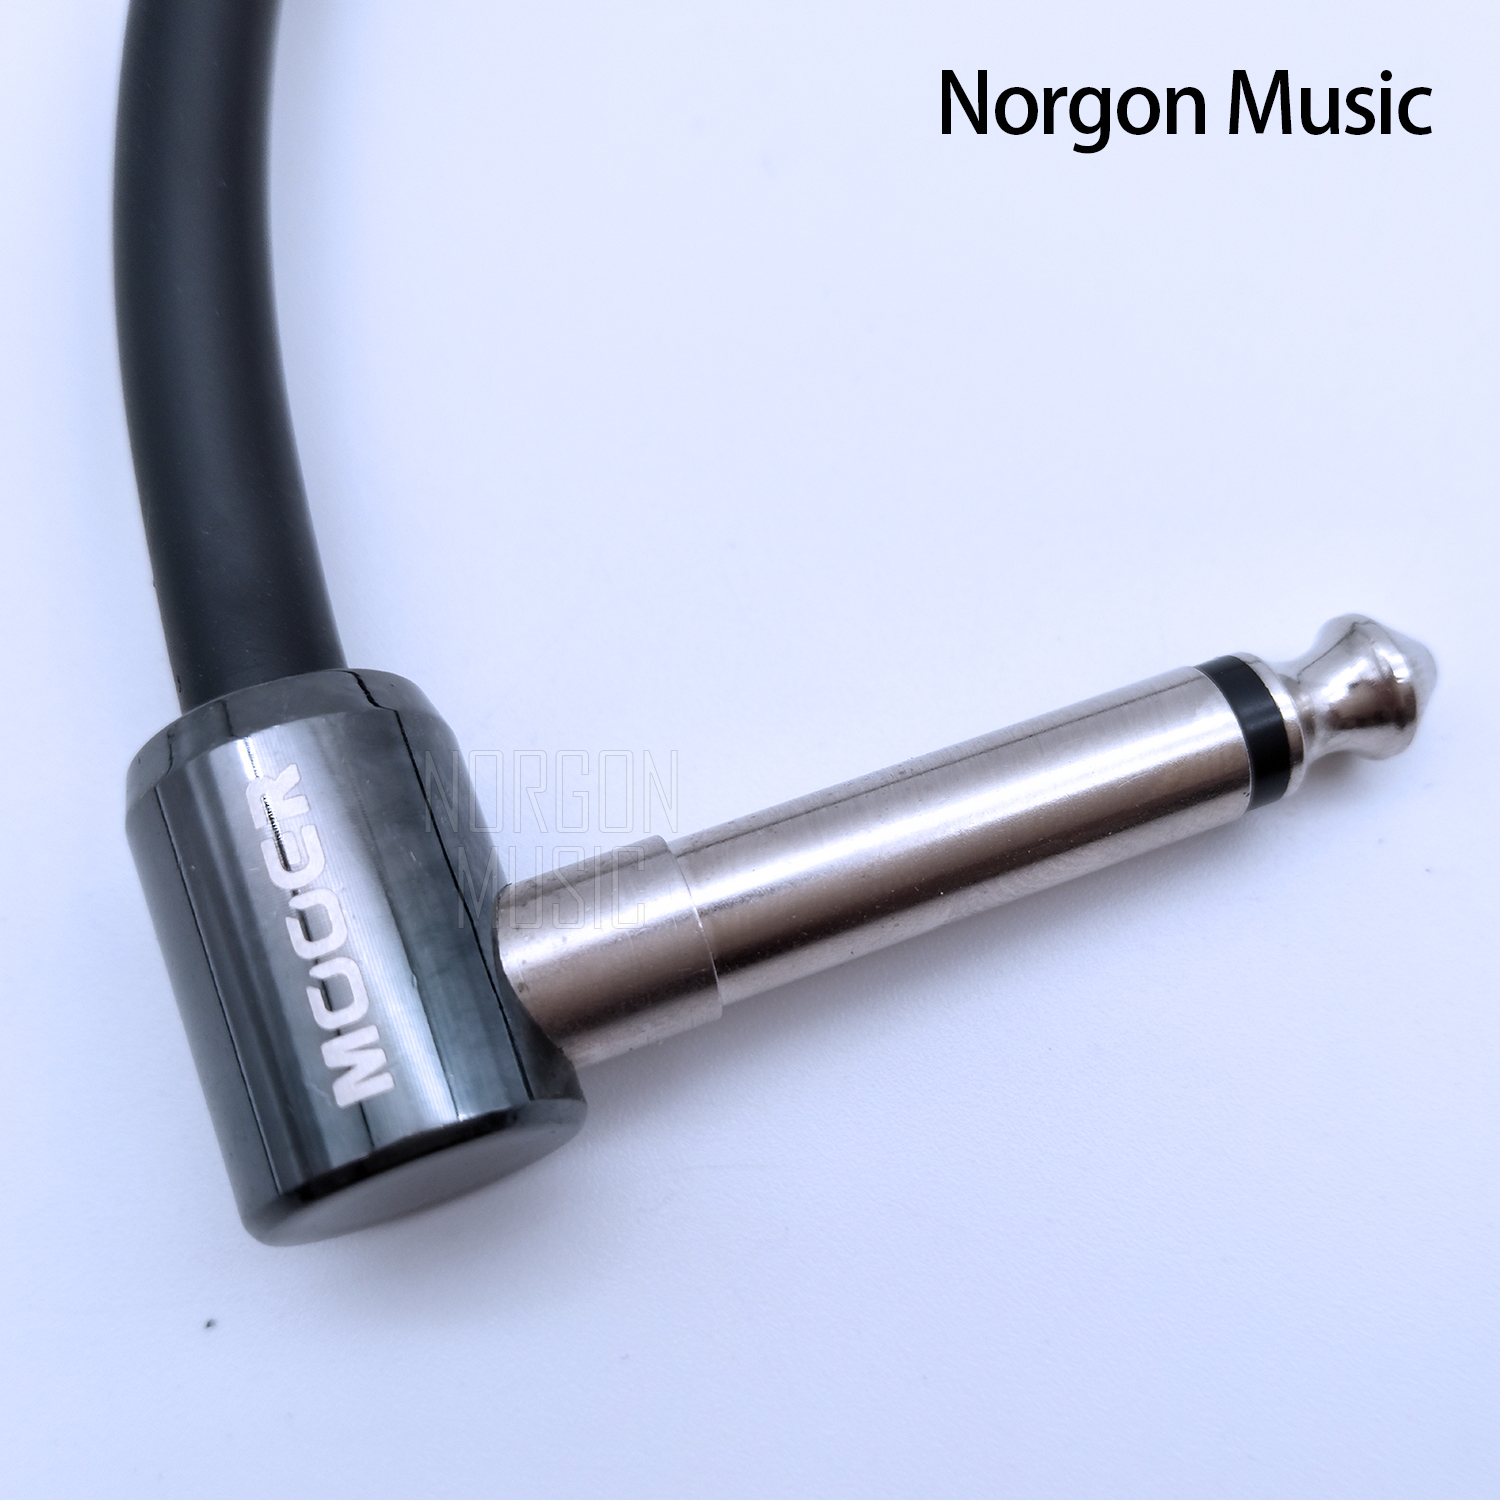 Mooer Guitar Pedals Connector Audio Patch Cable Effects Stompbox Guitar Accessories Power Cord FC Series